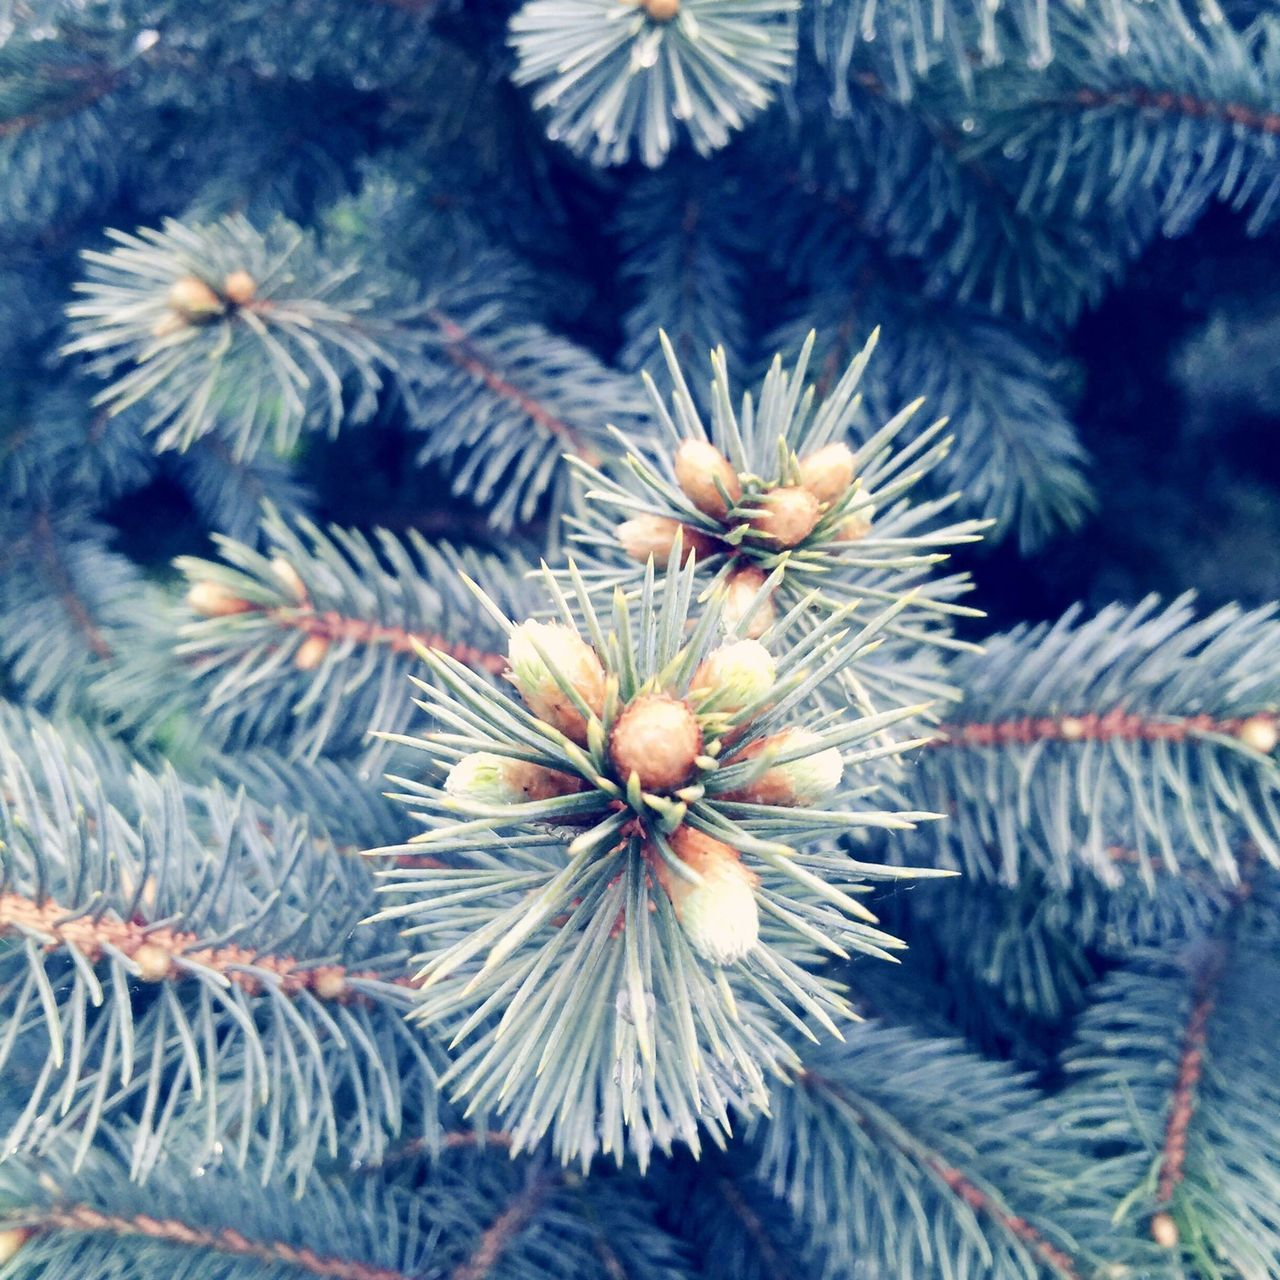 Backgrounds Beauty In Nature Blooming Blue Spruce Botany Close-up Day Flower Flower Head Focus On Foreground Fragility Full Frame Growing Growth Natural Pattern Nature No People Outdoors Plant Selective Focus Softness Spring Has Arrived Tranquility Nature Diversities Oswego, IL